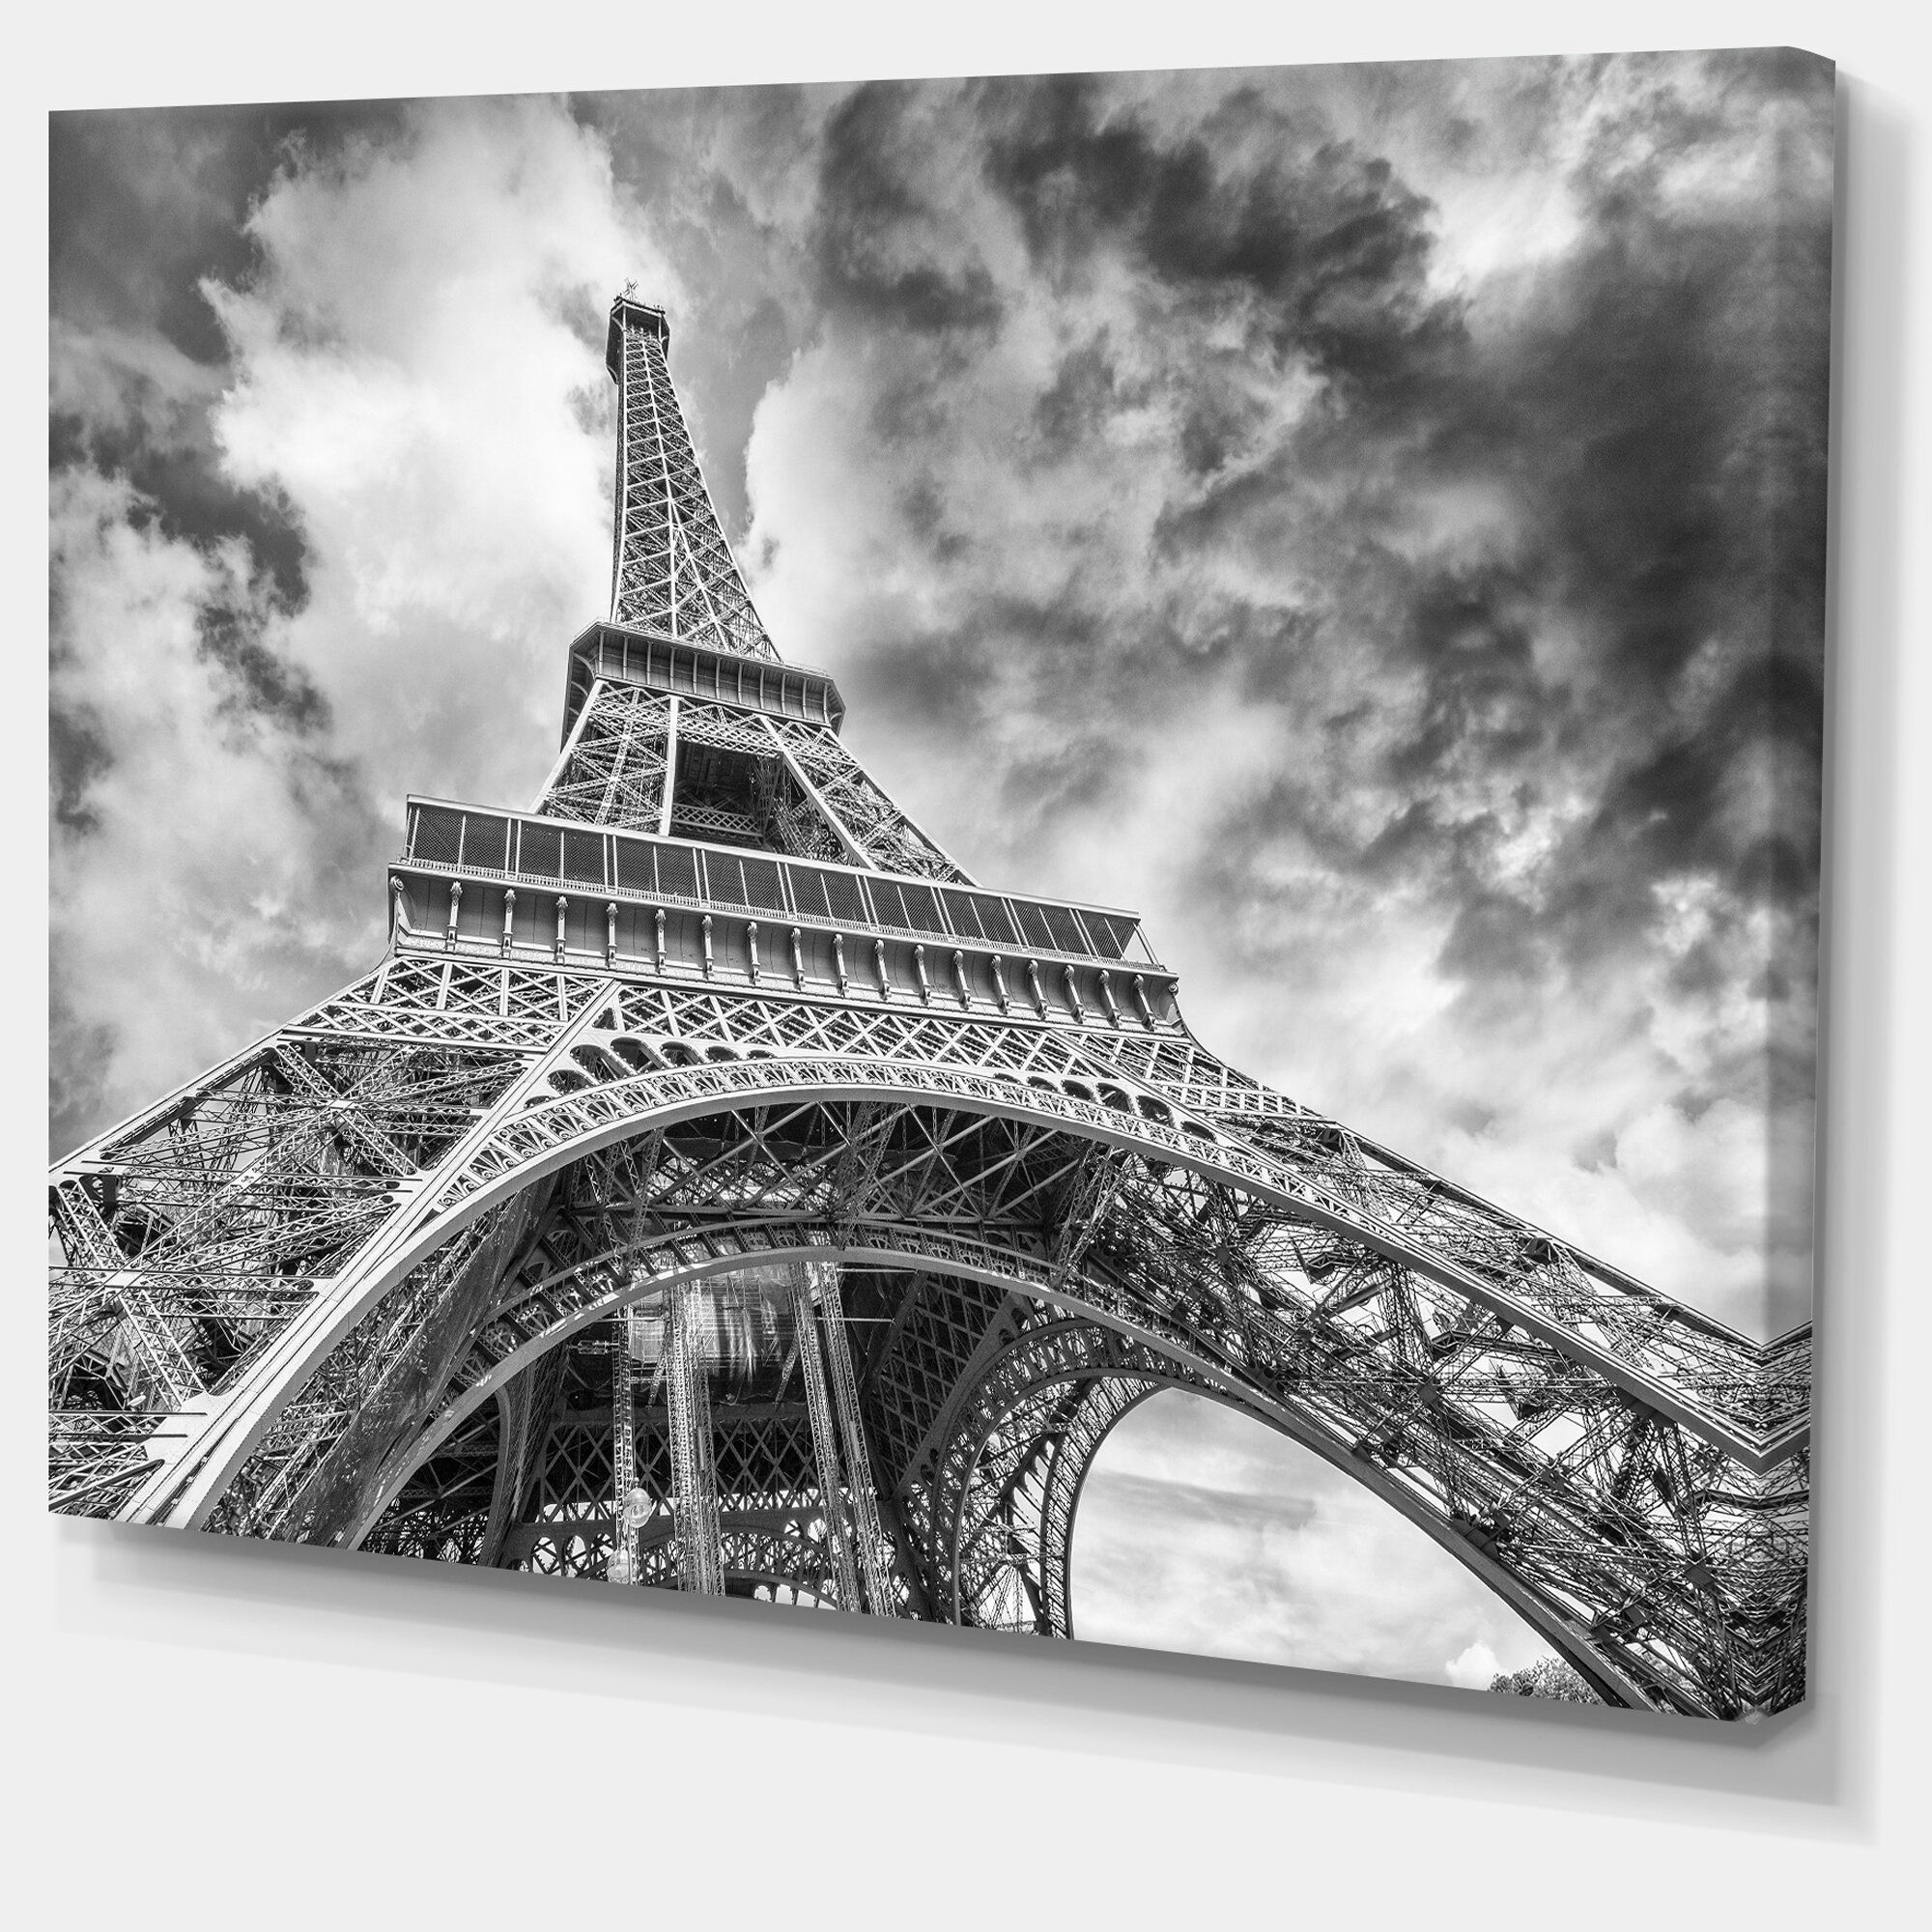 Designart Black And White View Of Paris Eiffel Tower Cityscape Photographic Print On Wrapped Canvas Reviews Wayfair